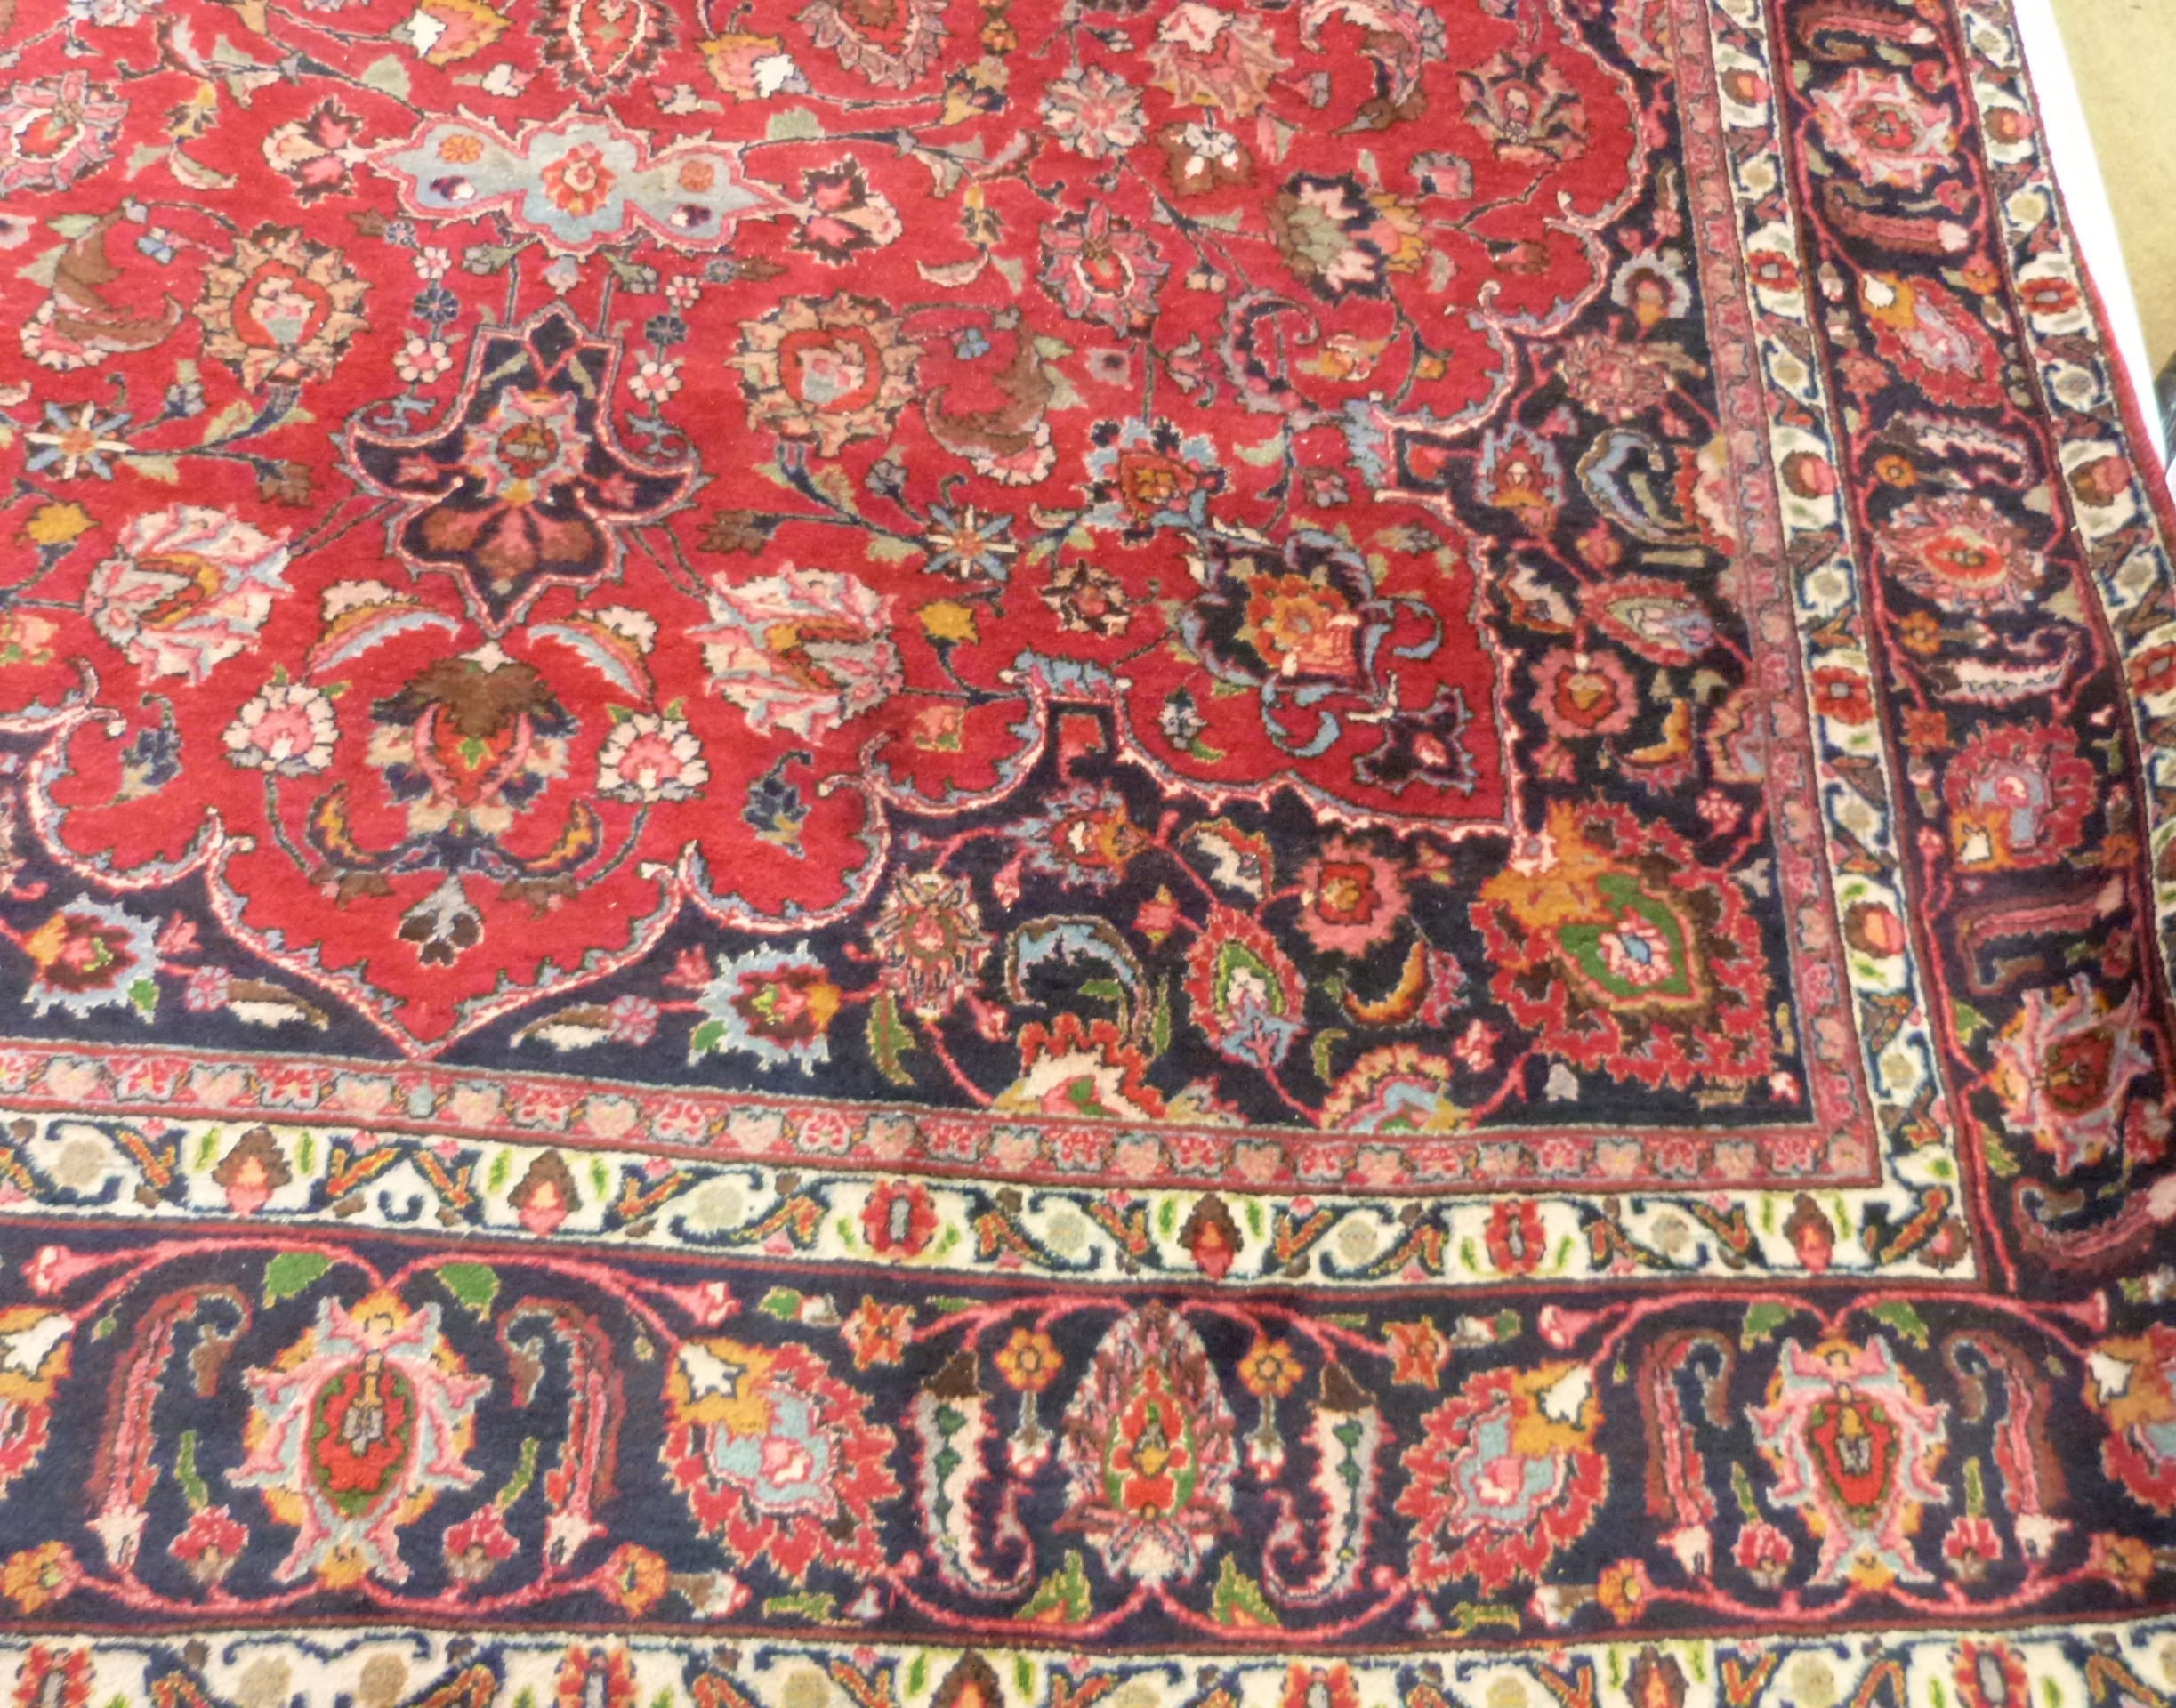 Large red ground Persian Mashad Carpet, mutlicoloured with traditional design 388cm x 270cm approx - Image 3 of 7